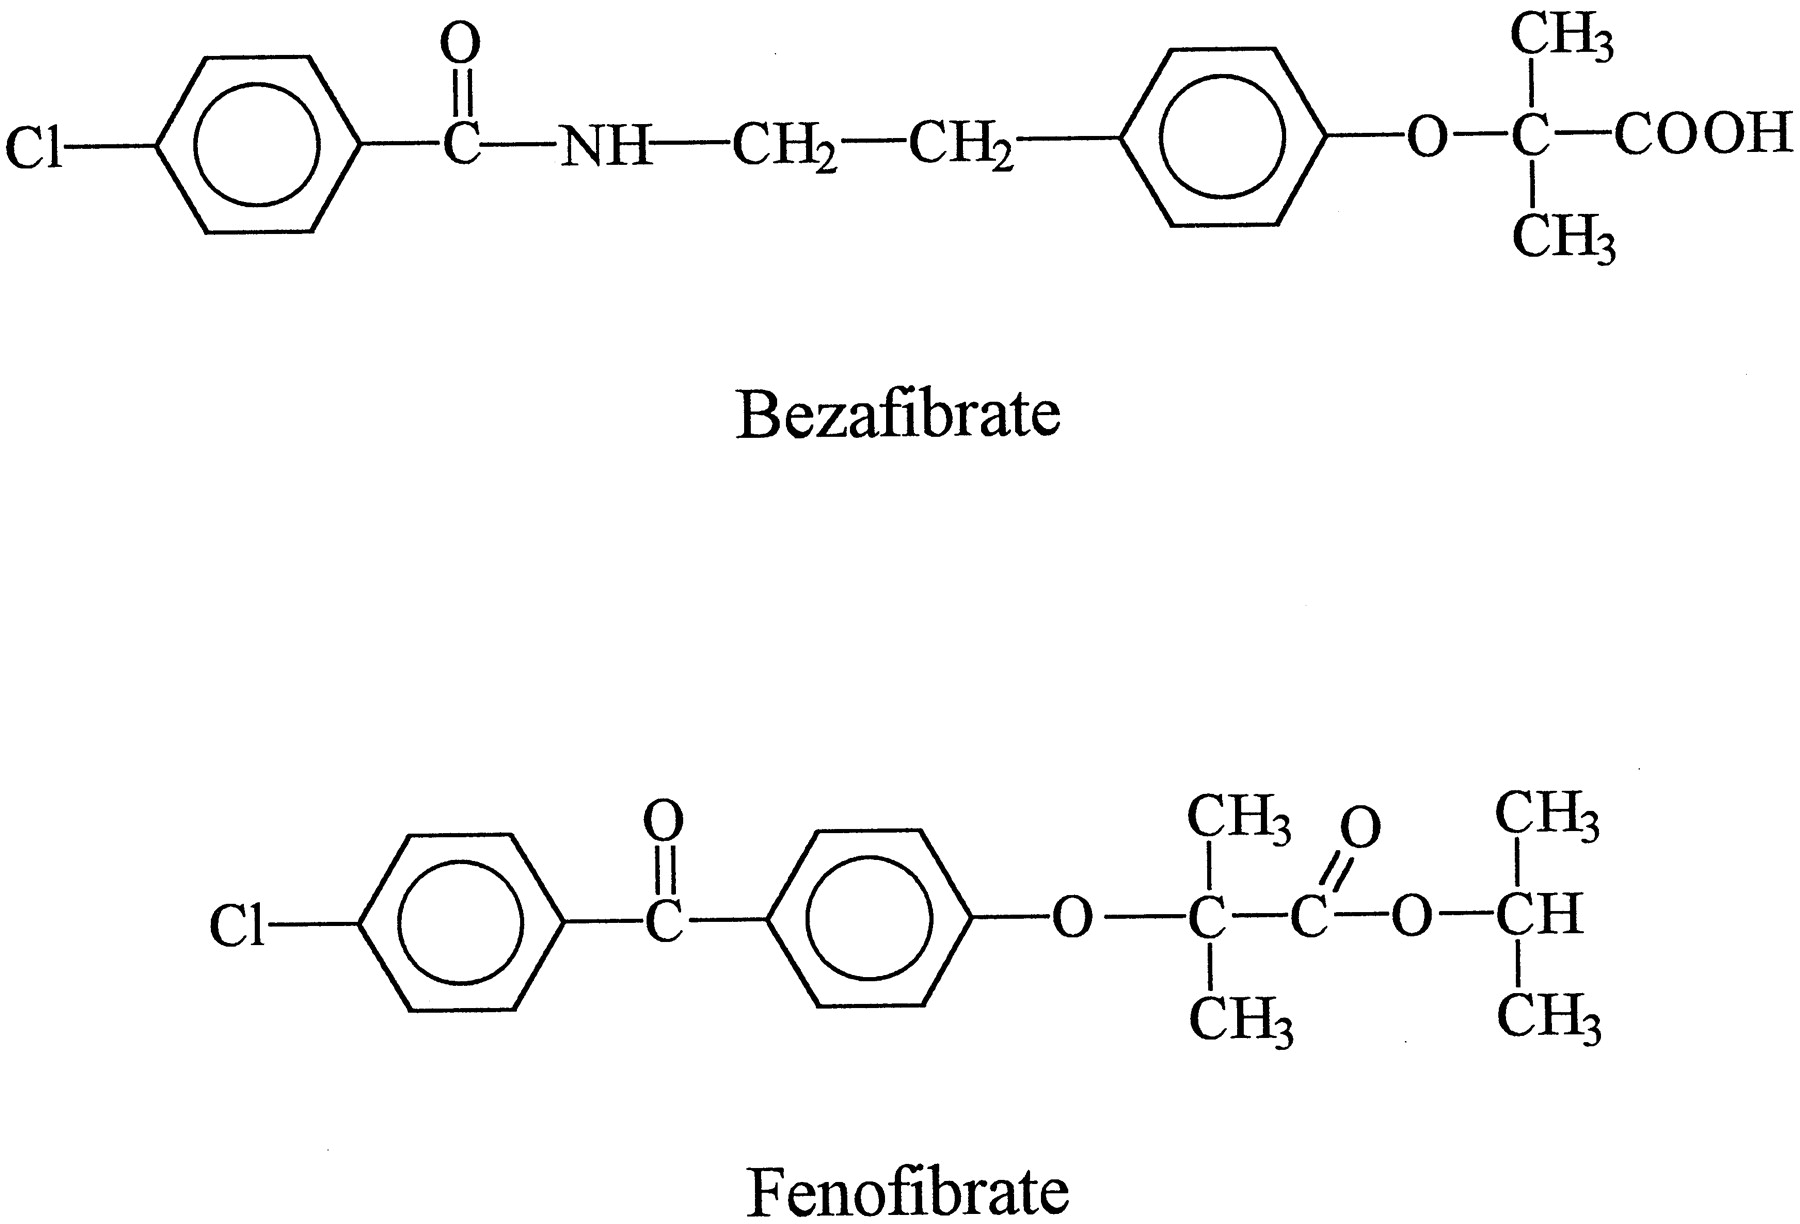 Effects of Fibrates on the Glycine Conjugation of Benzoic Acid in